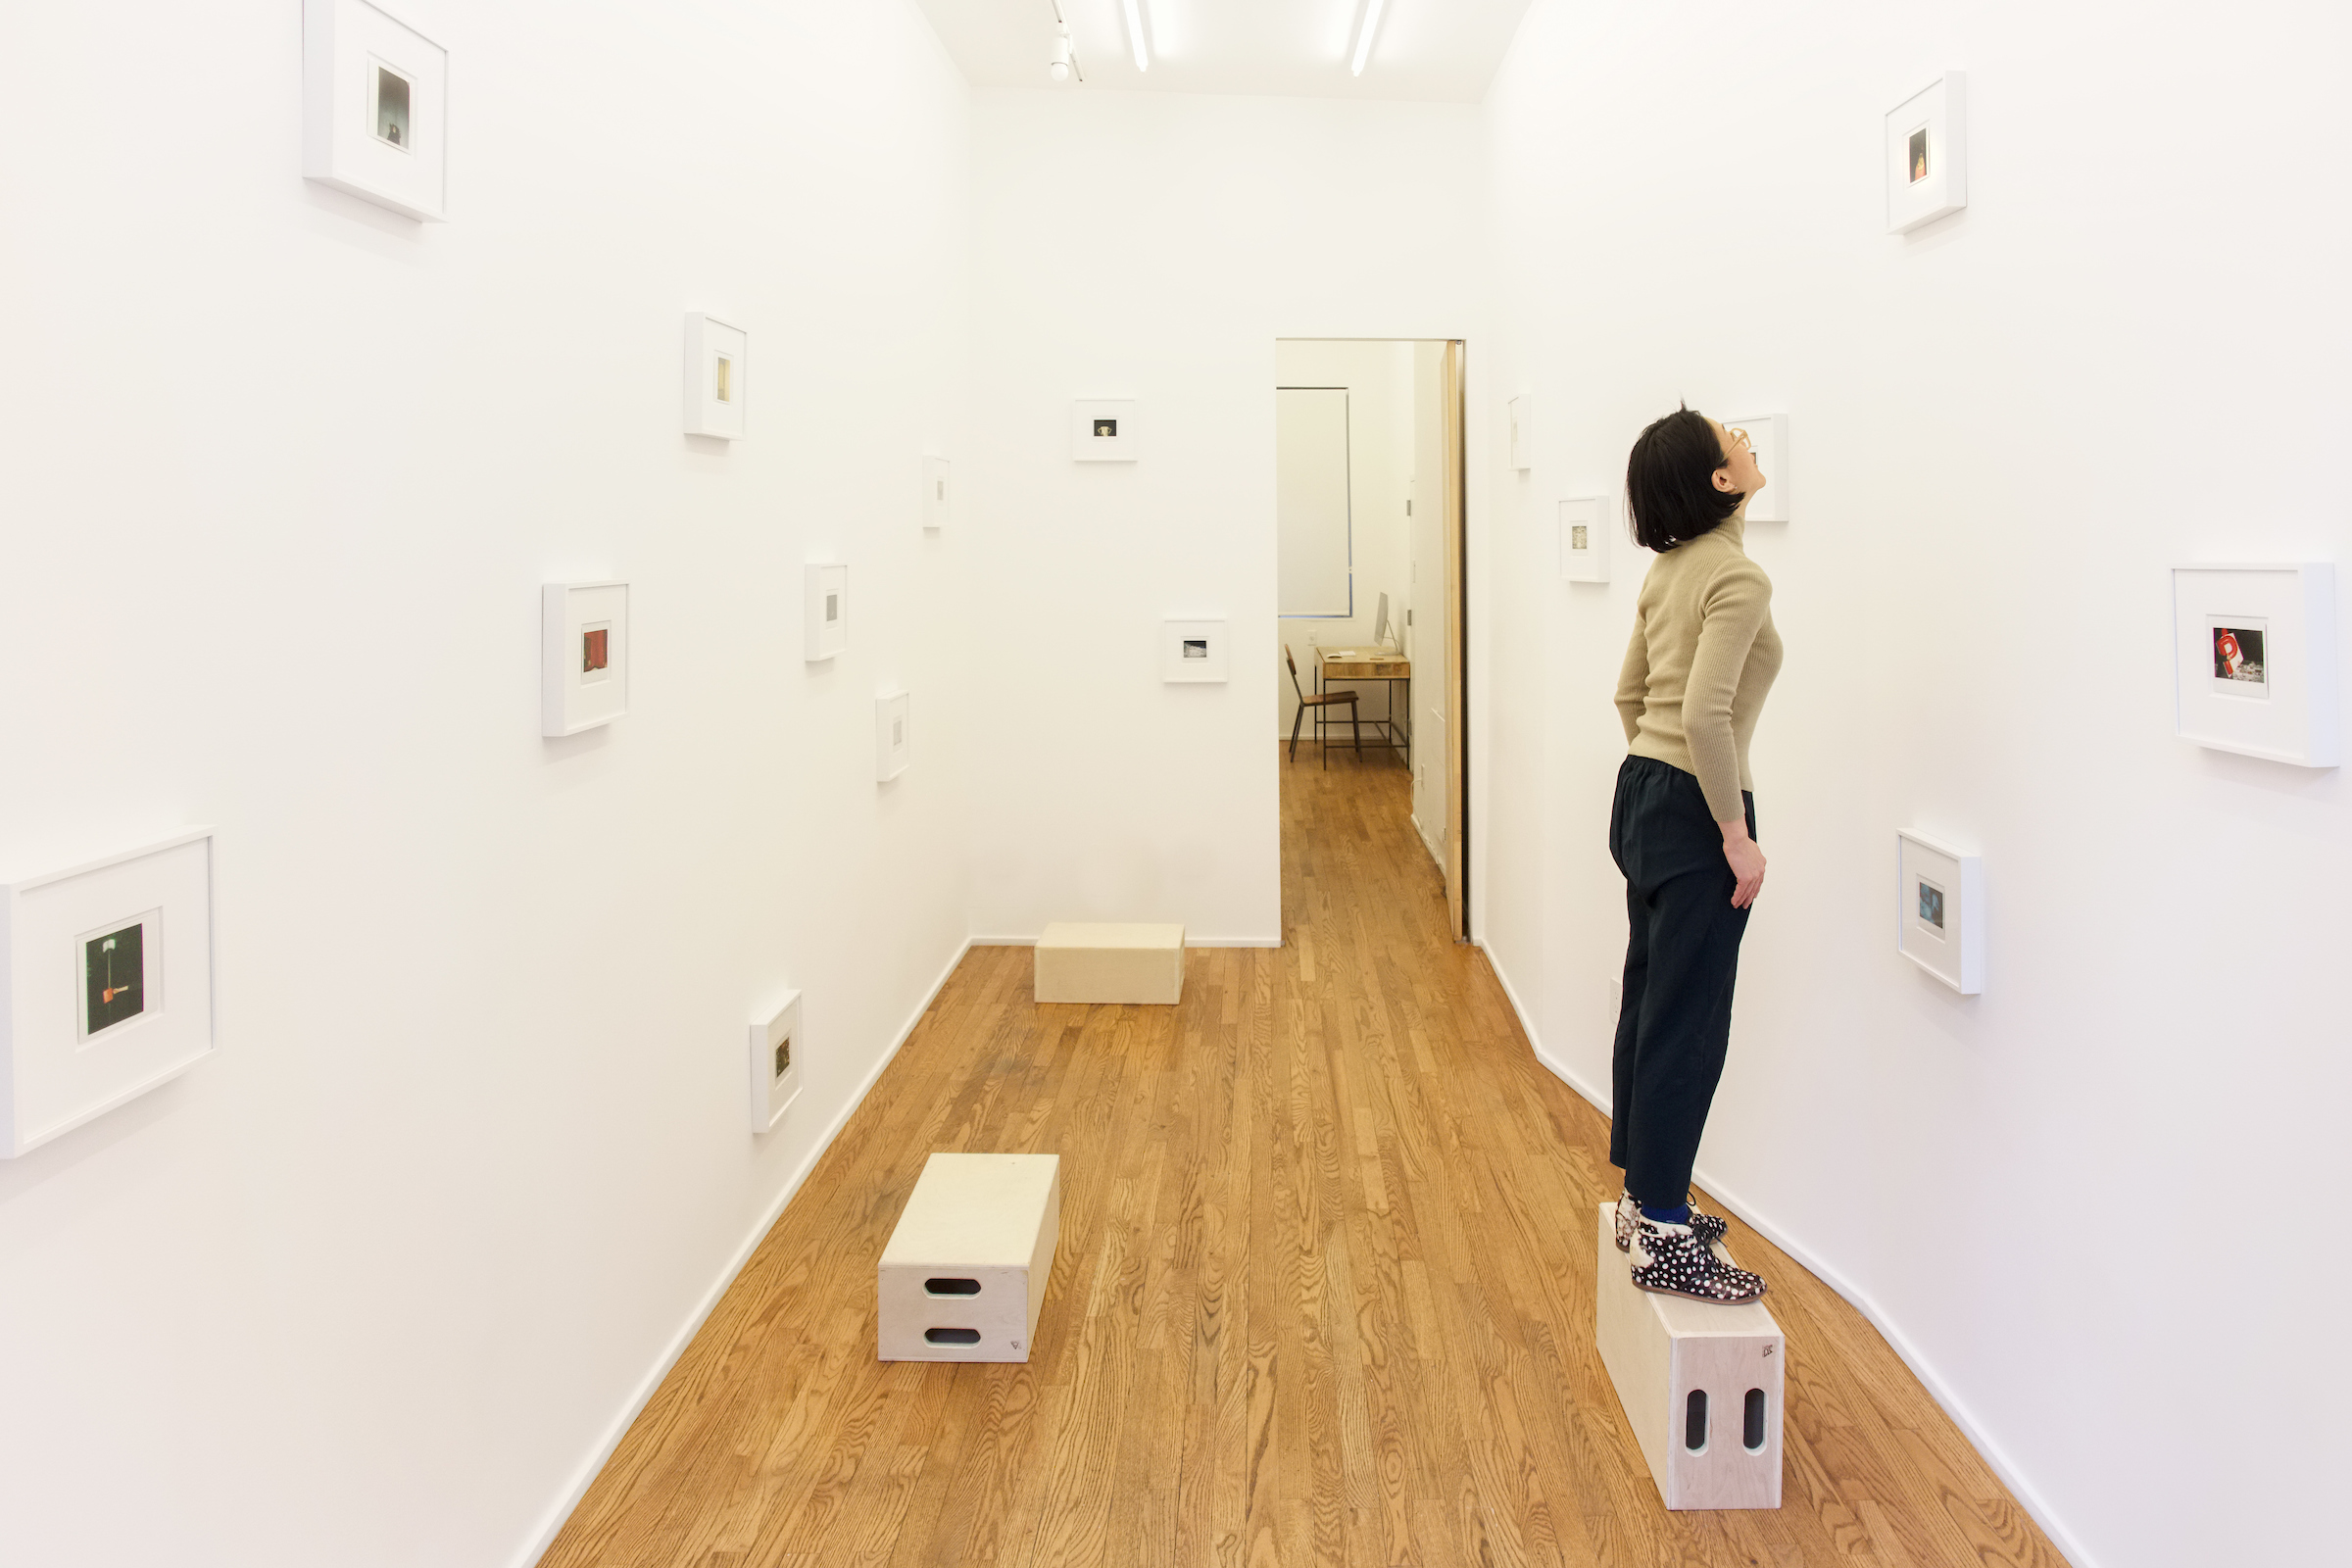 Installation 30_w boxes and a person_2400px.jpg